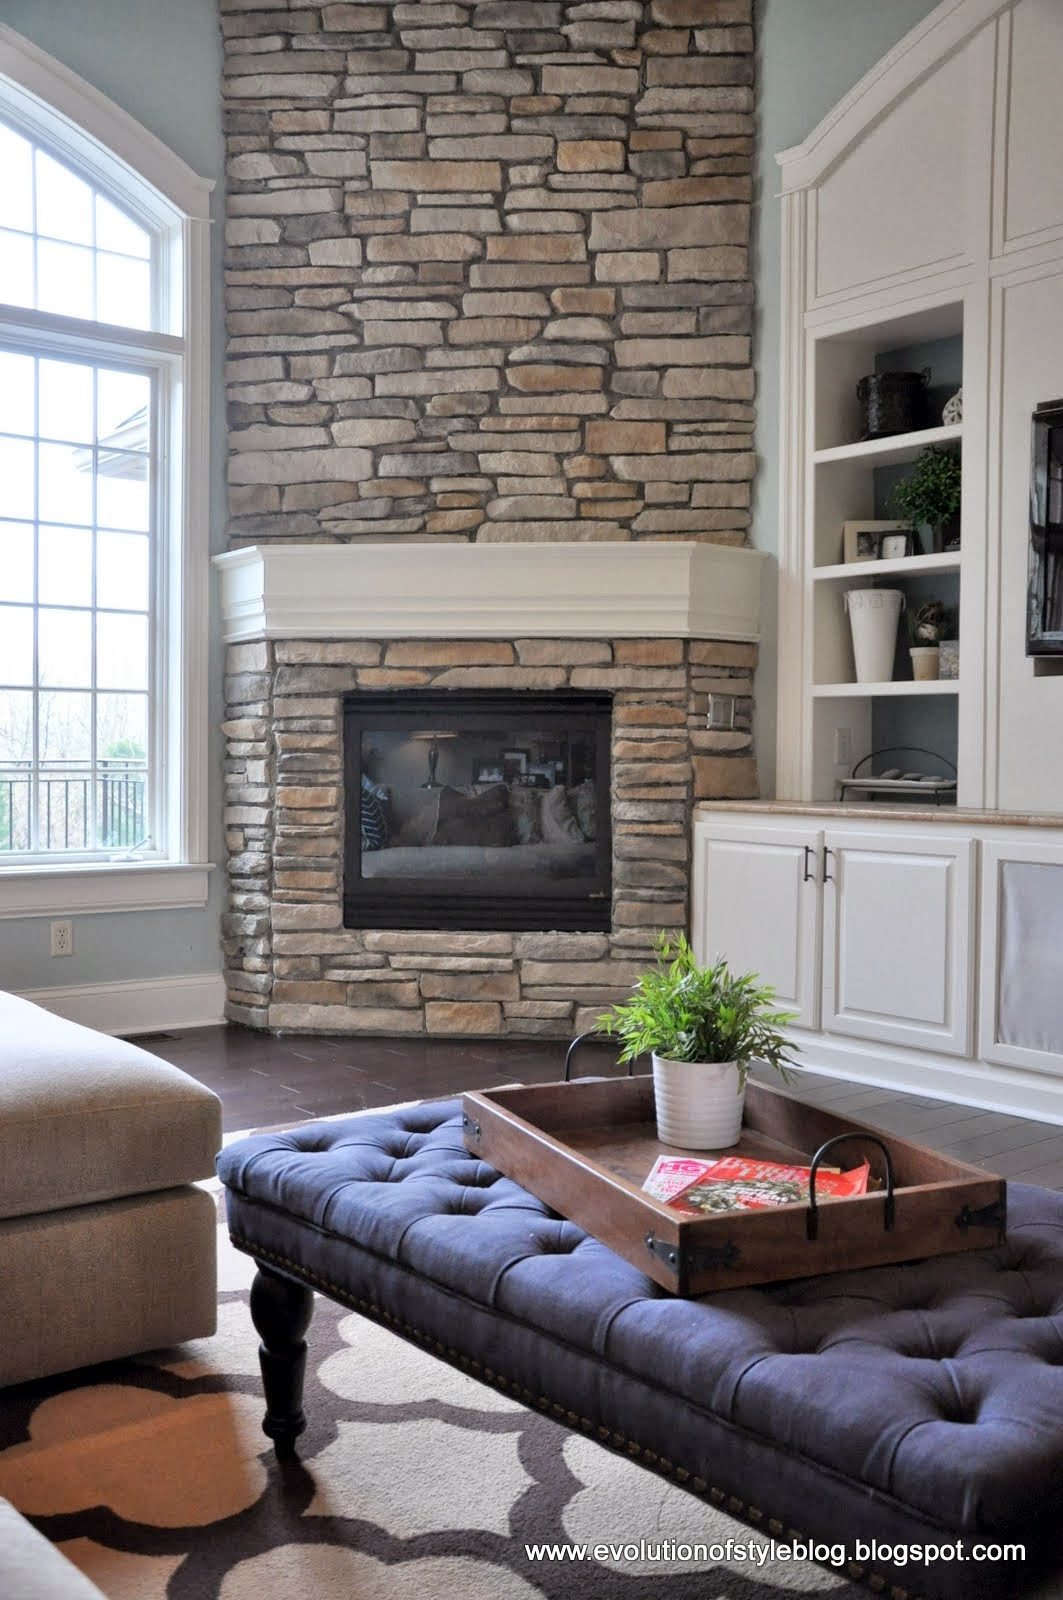 DIY Stone Fireplace  DIY Stone Fireplace Reveal for real Evolution of Style